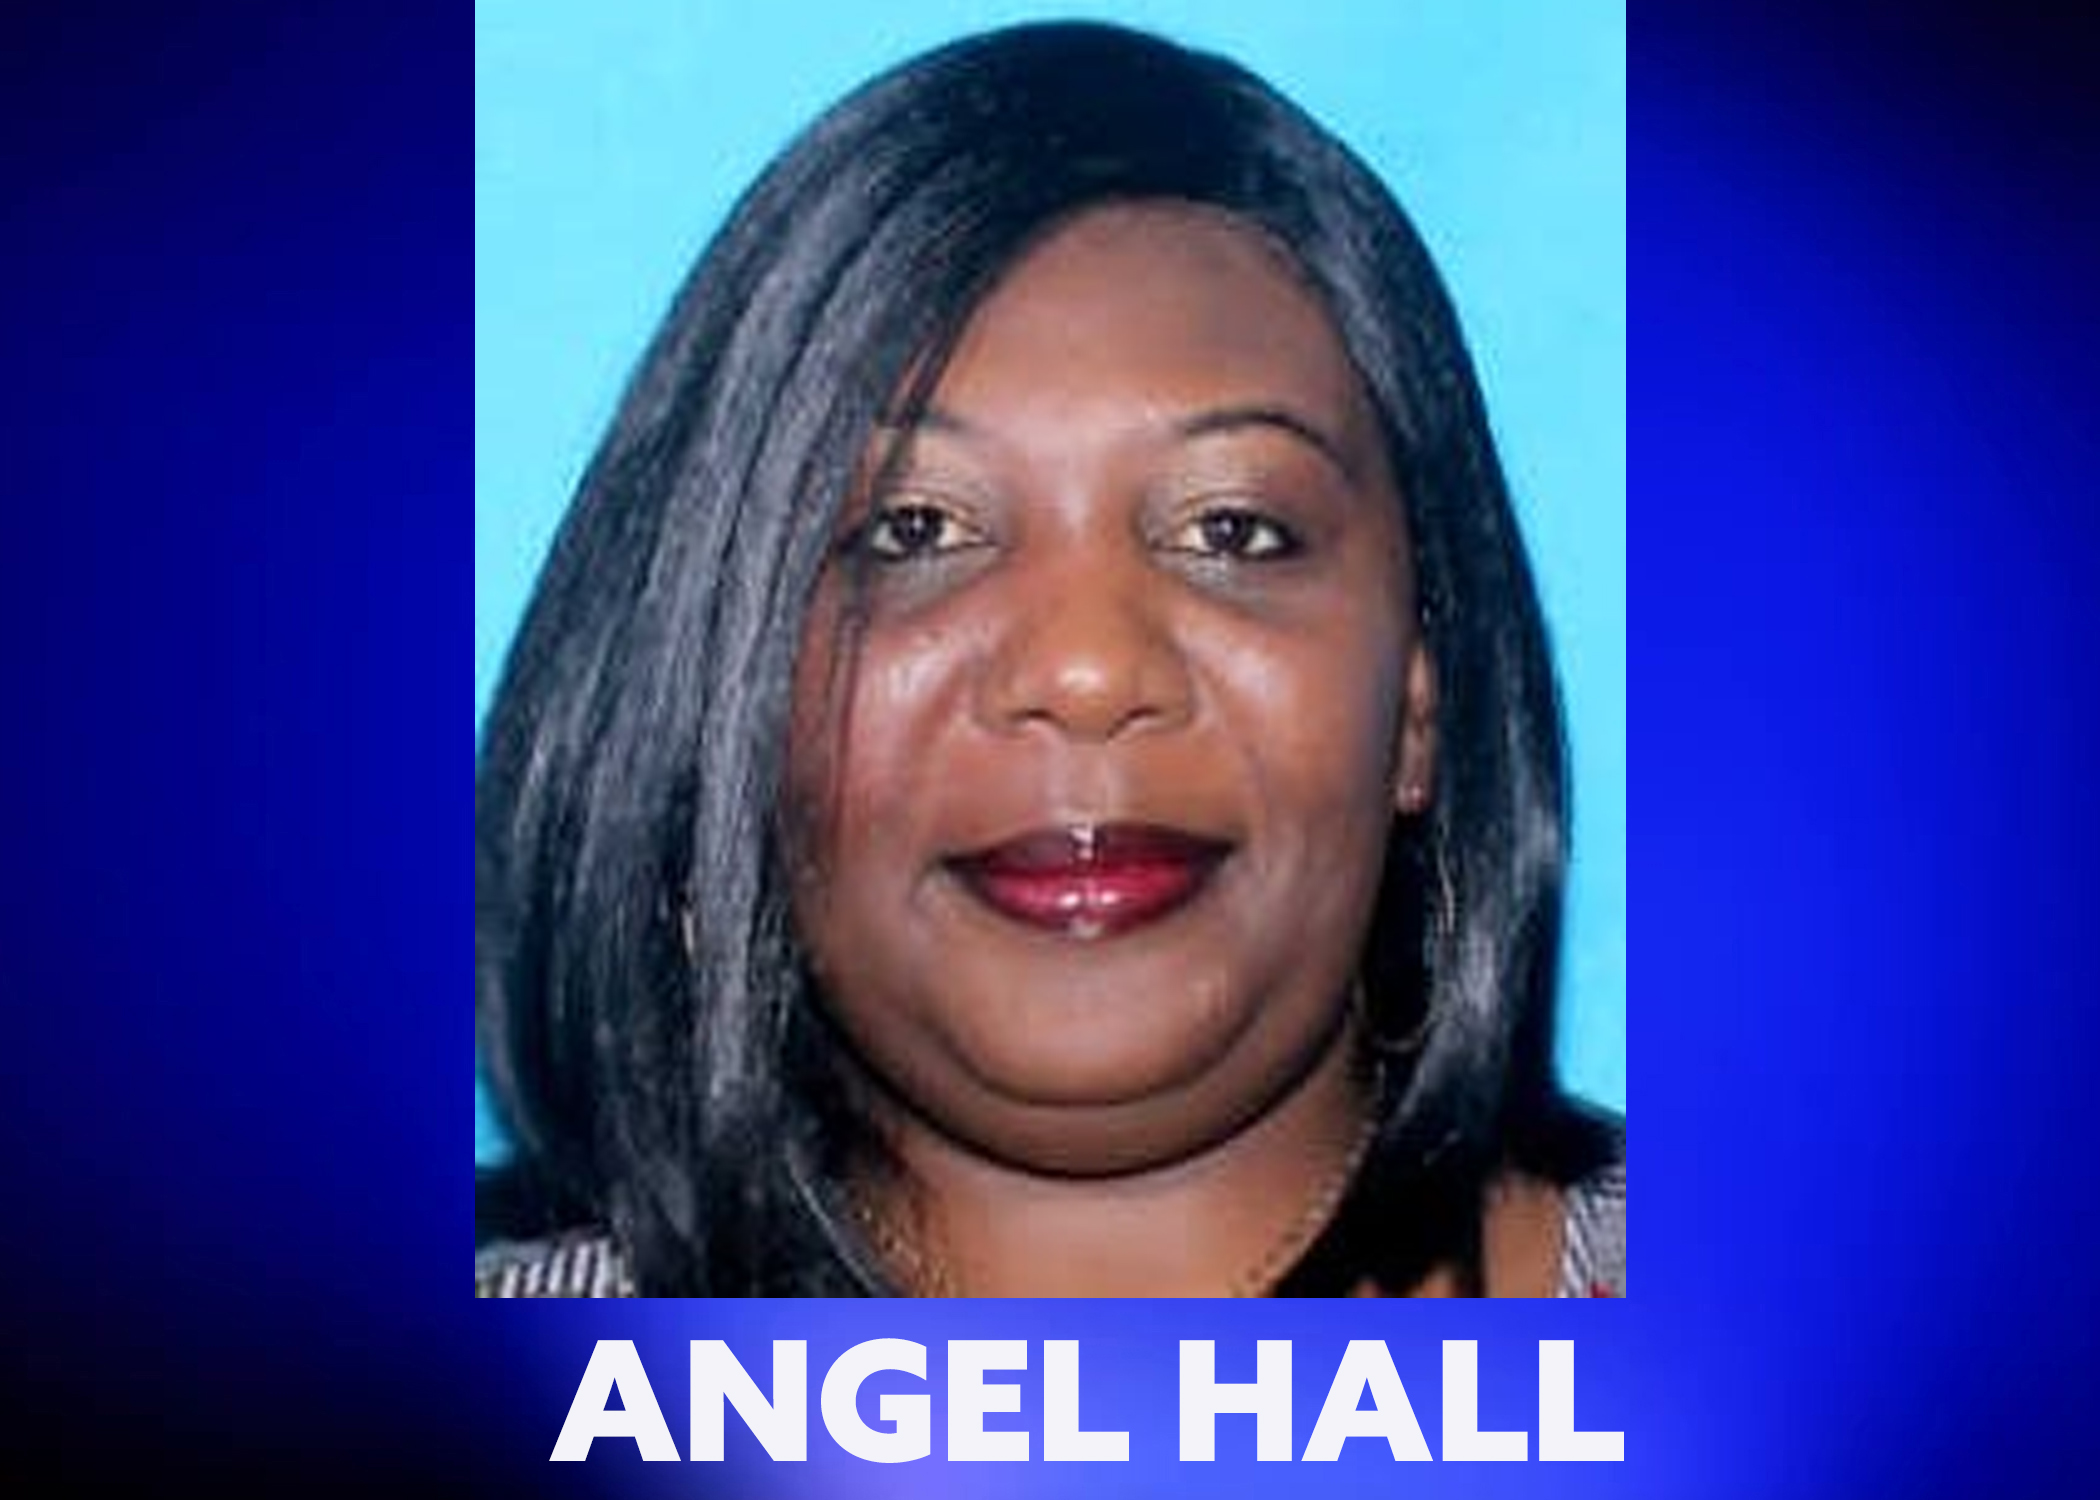 Woman wanted in Trussville for financial exploitation of an elderly person